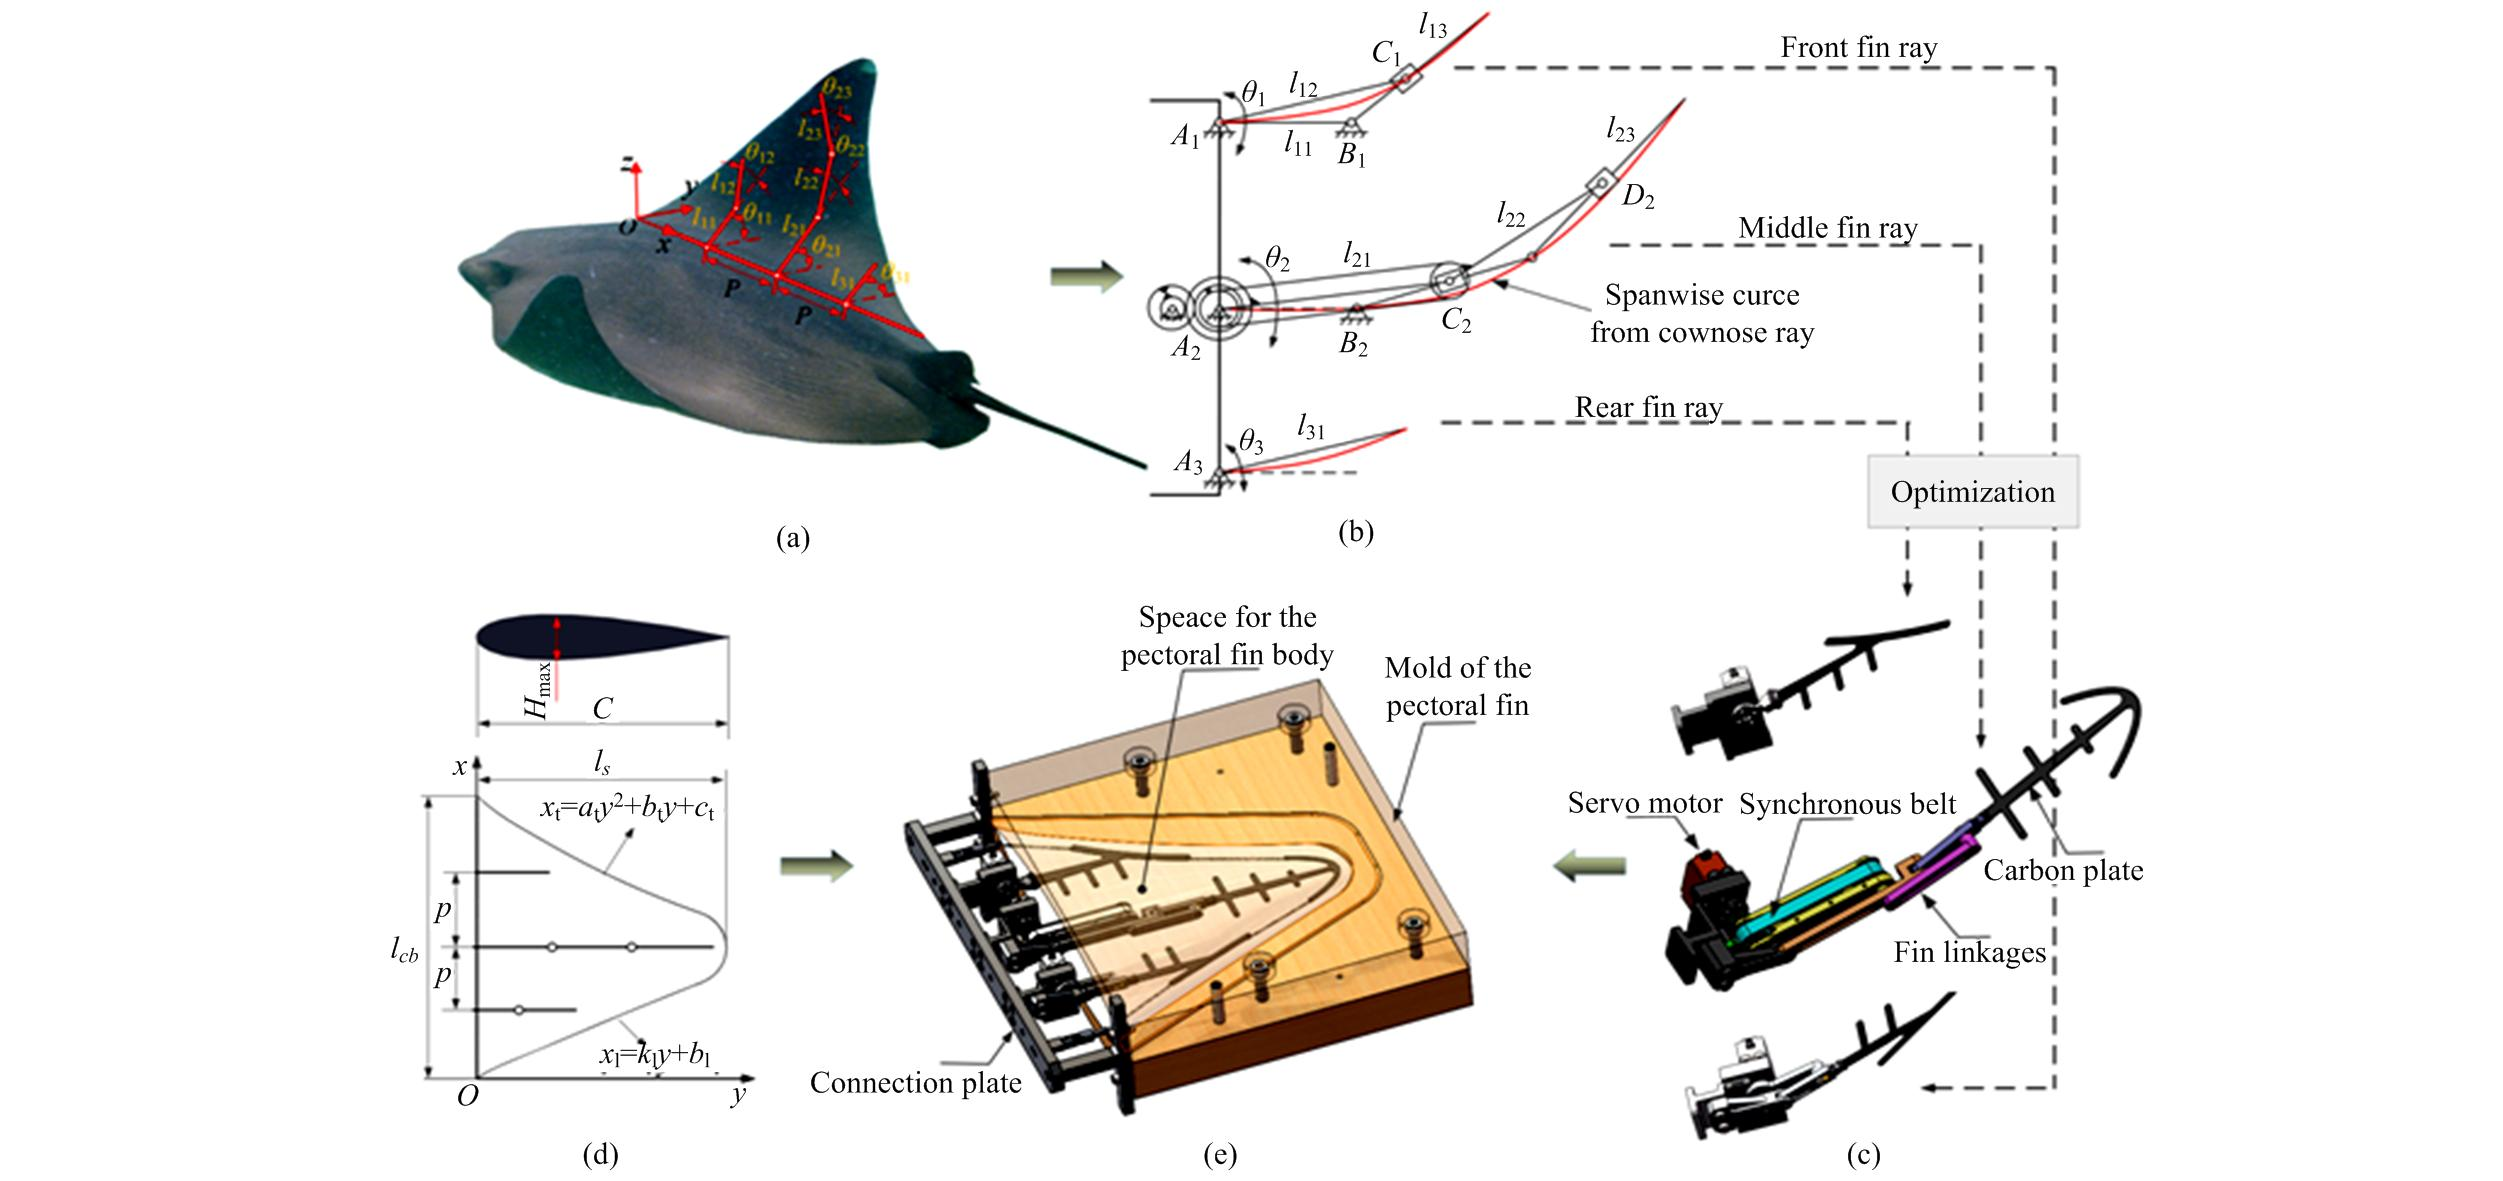 Bionic Flapping Pectoral Fin with Controllable Spatial Deformation